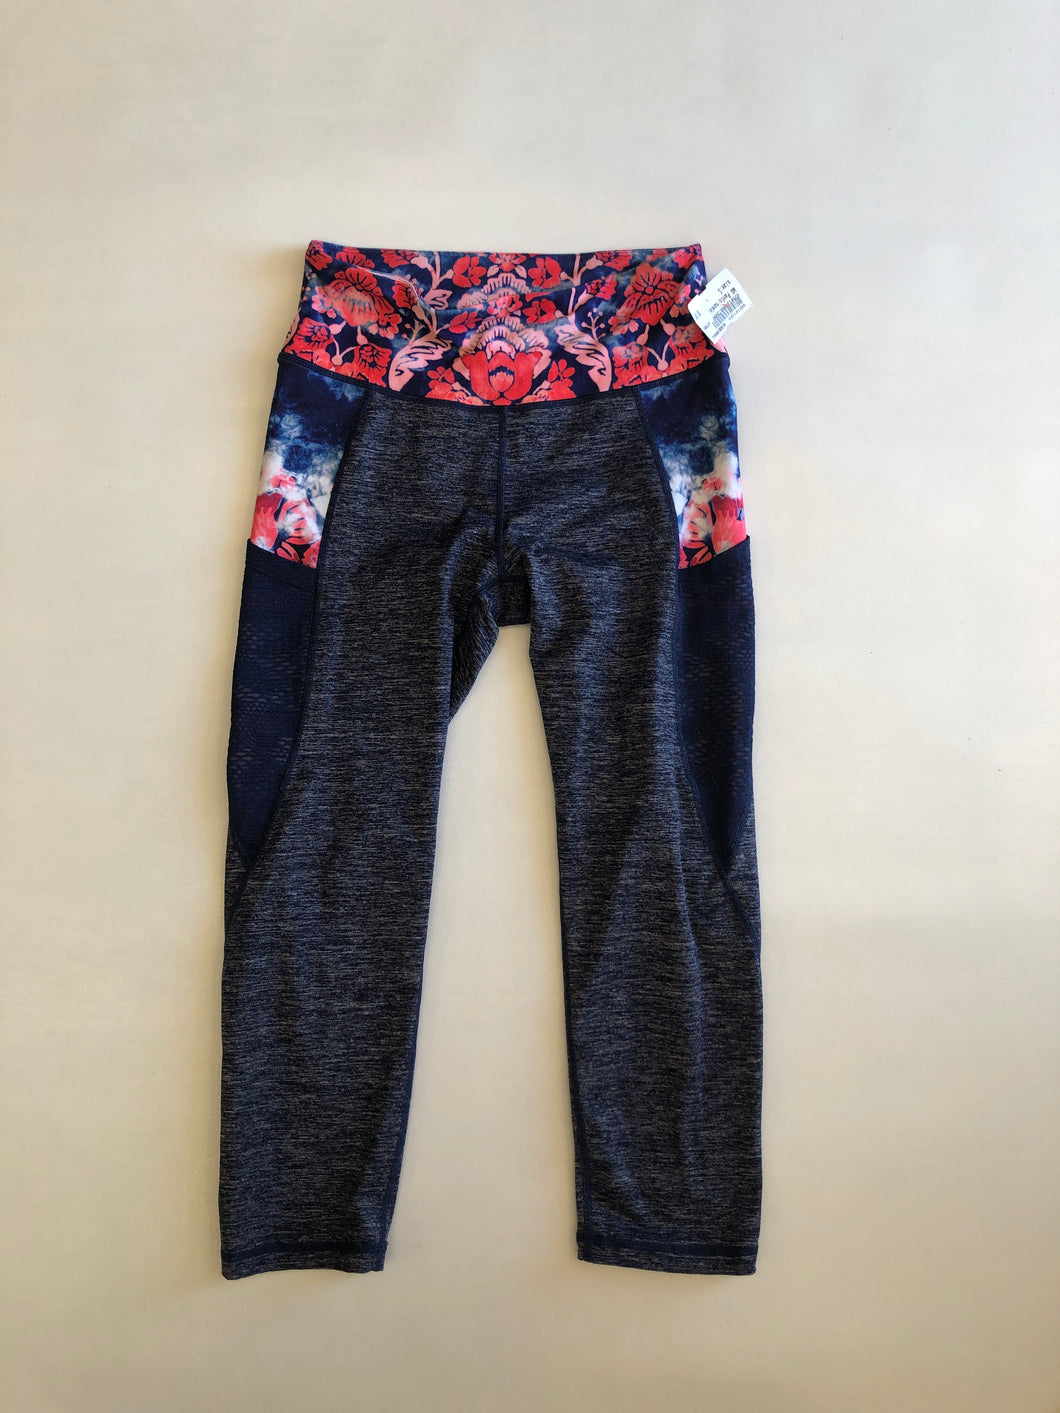 Womens Athletic Pants Size Small